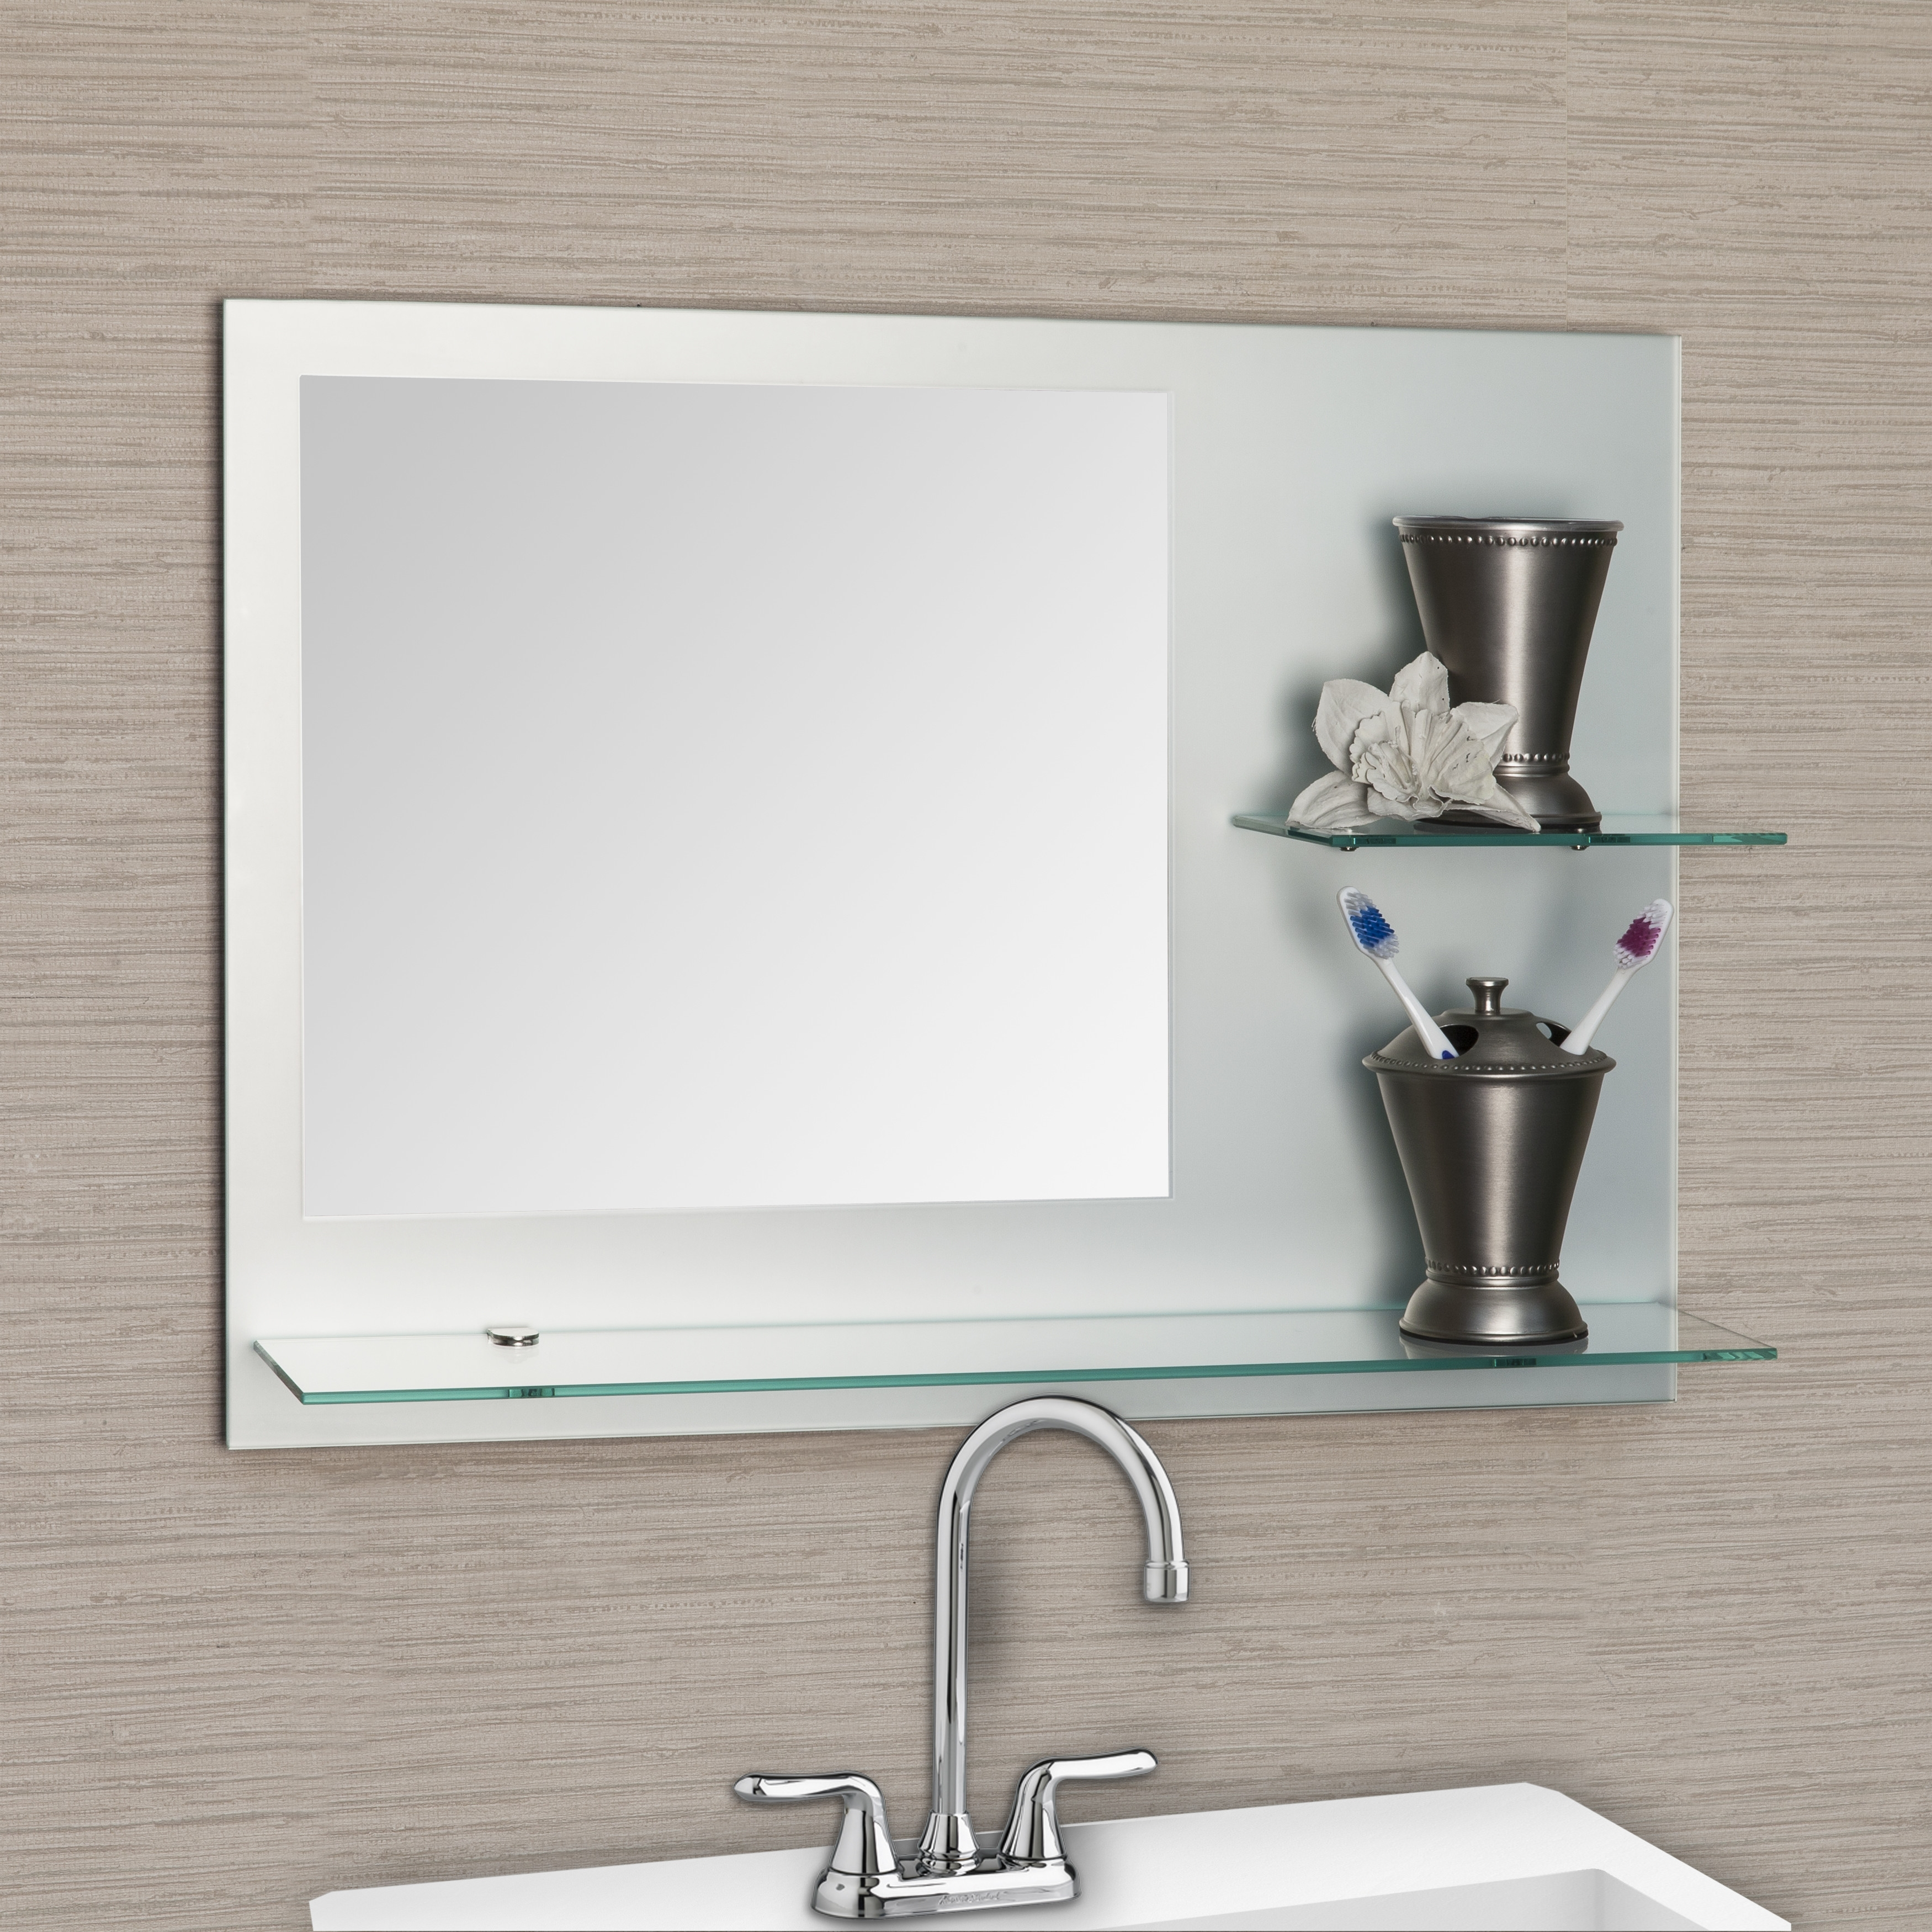 Modern Bathroom Mirror Fresca Vista Walnut Modern Bathroom Vanity For Odd Shaped Mirrors (Image 5 of 15)